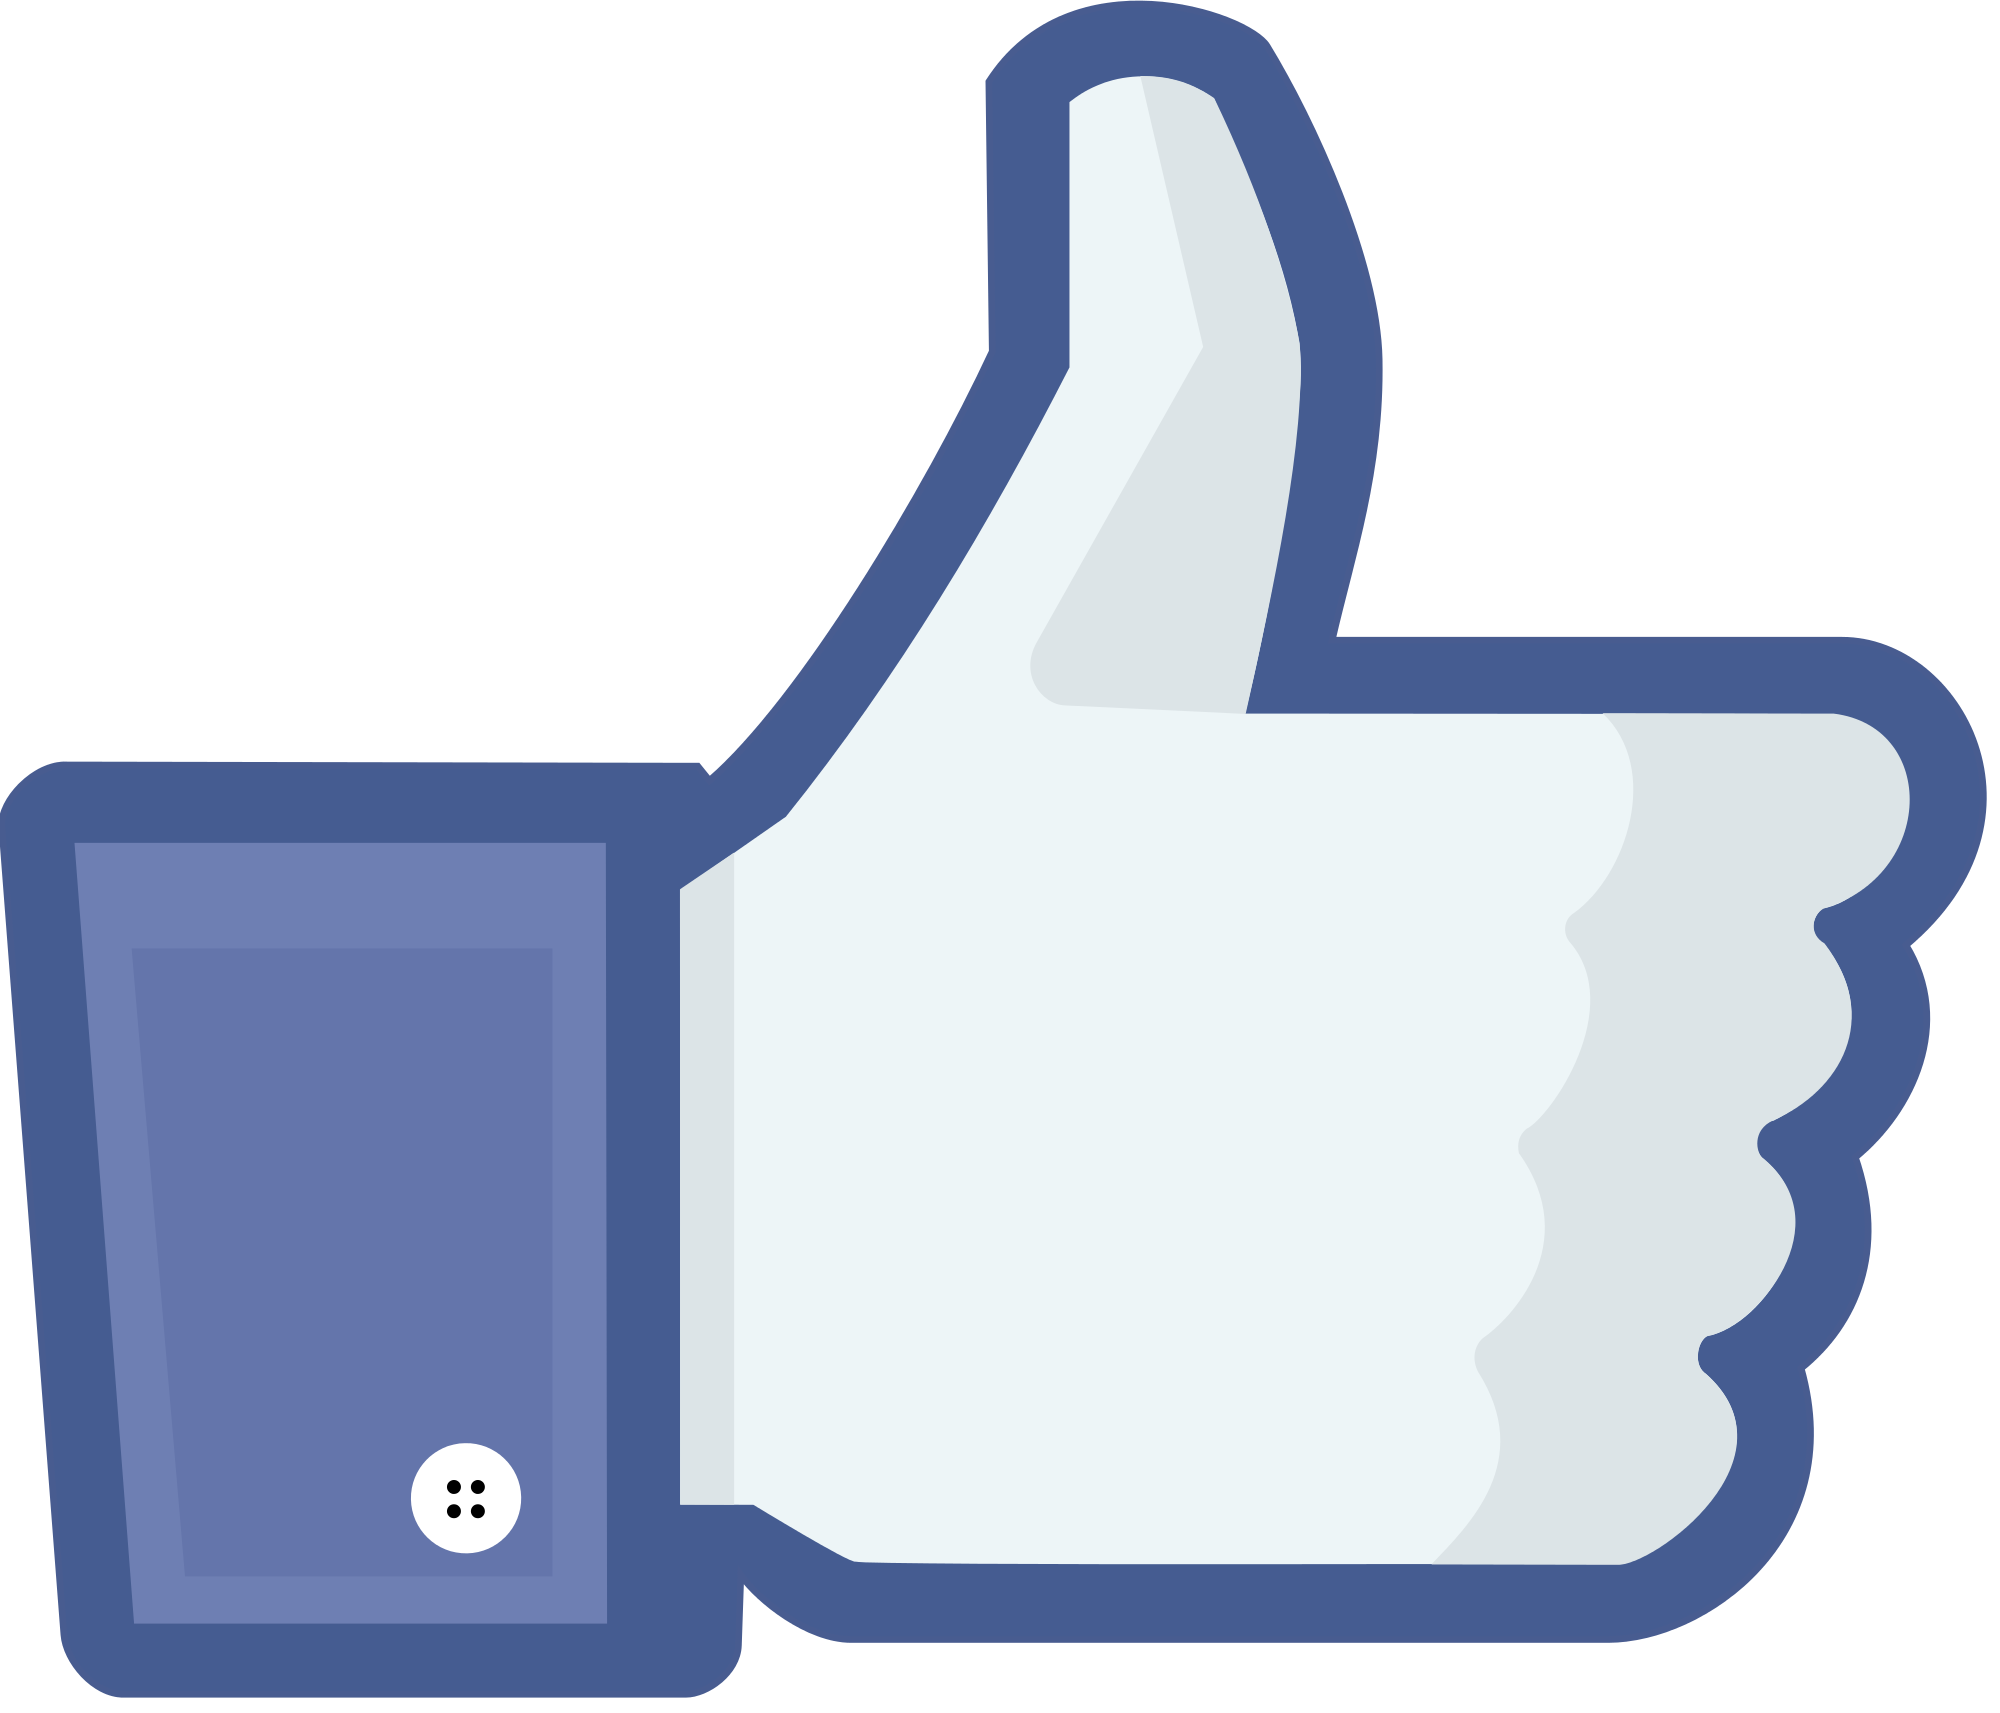 Facebooks Like Button Might Be Illegal image